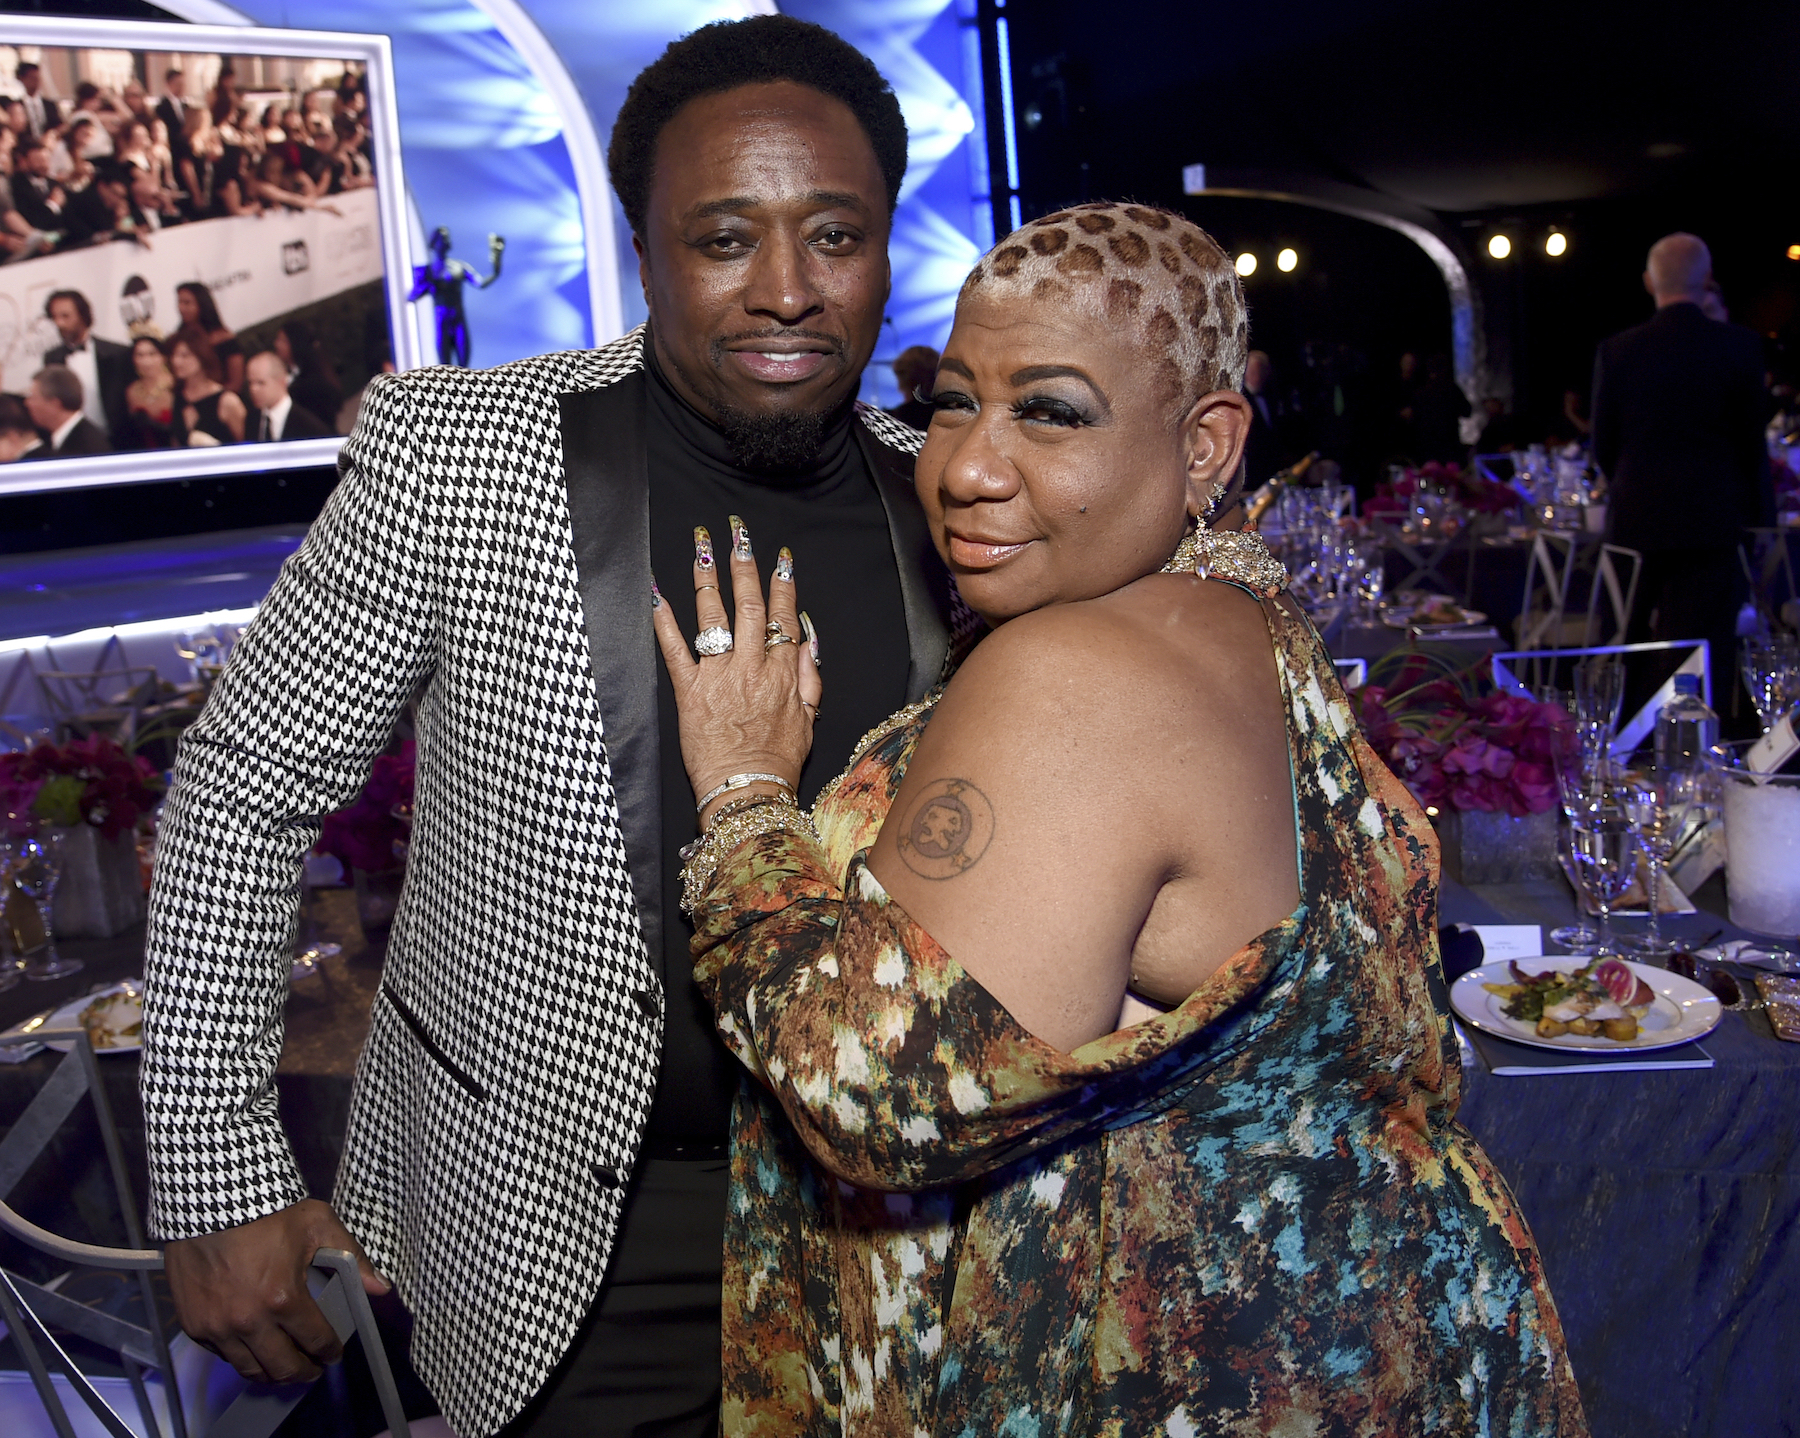 "<div class=""meta image-caption""><div class=""origin-logo origin-image ap""><span>AP</span></div><span class=""caption-text"">Eddie Griffin, left and Luenell attends the 25th annual Screen Actors Guild Awards at the Shrine Auditorium & Expo Hall on Sunday, Jan. 27, 2019, in Los Angeles. (Richard Shotwell/Invision/AP)</span></div>"